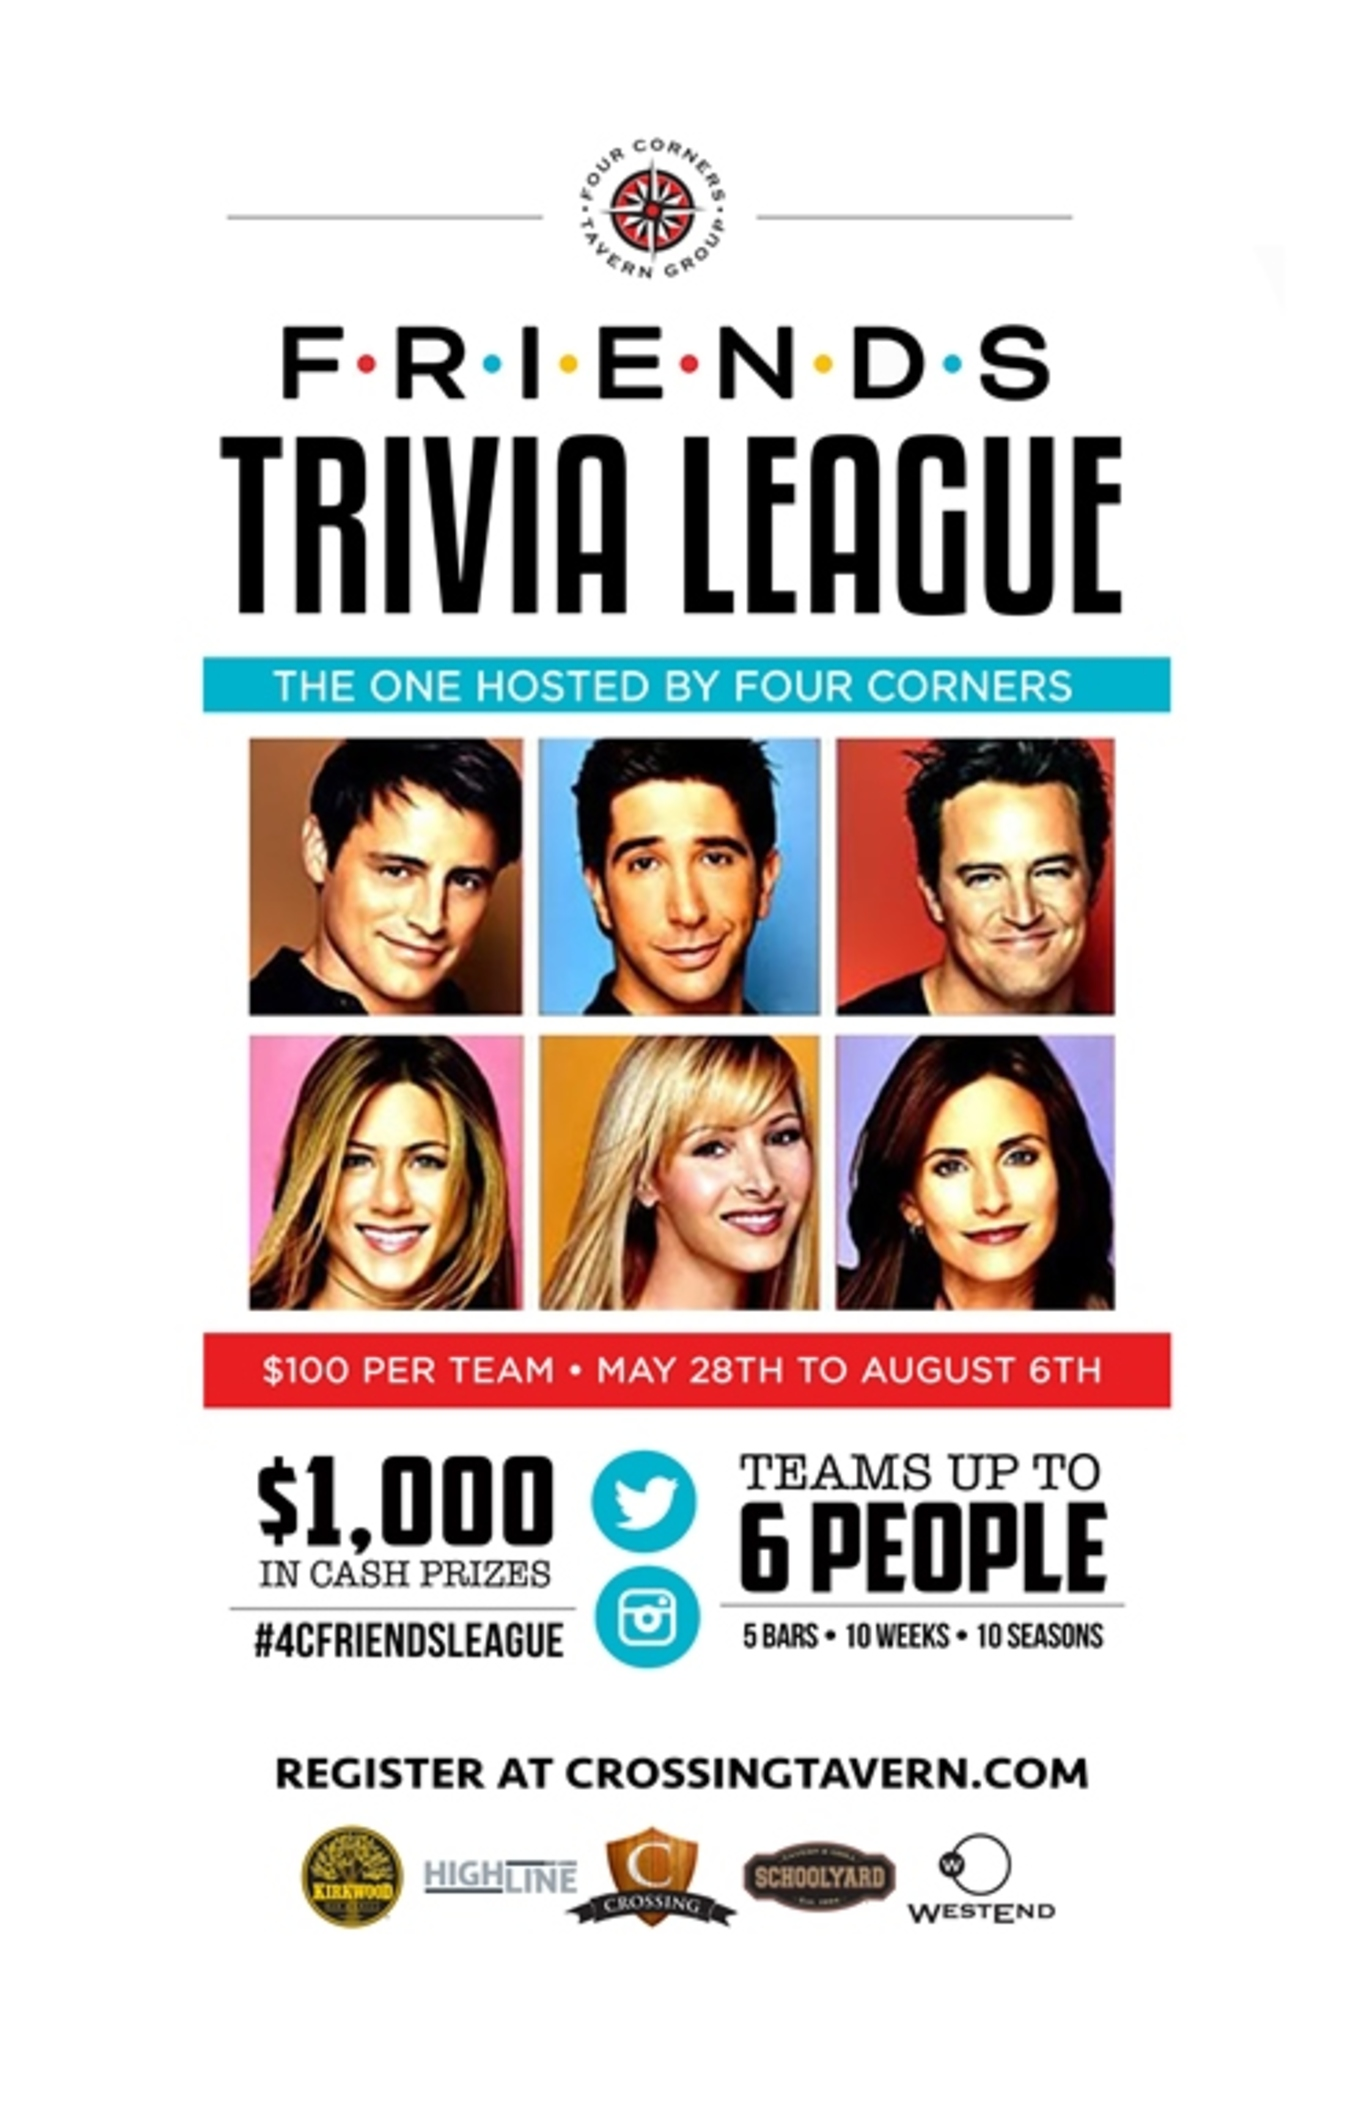 Friends Trivia League - Tickets - May 28, 2015